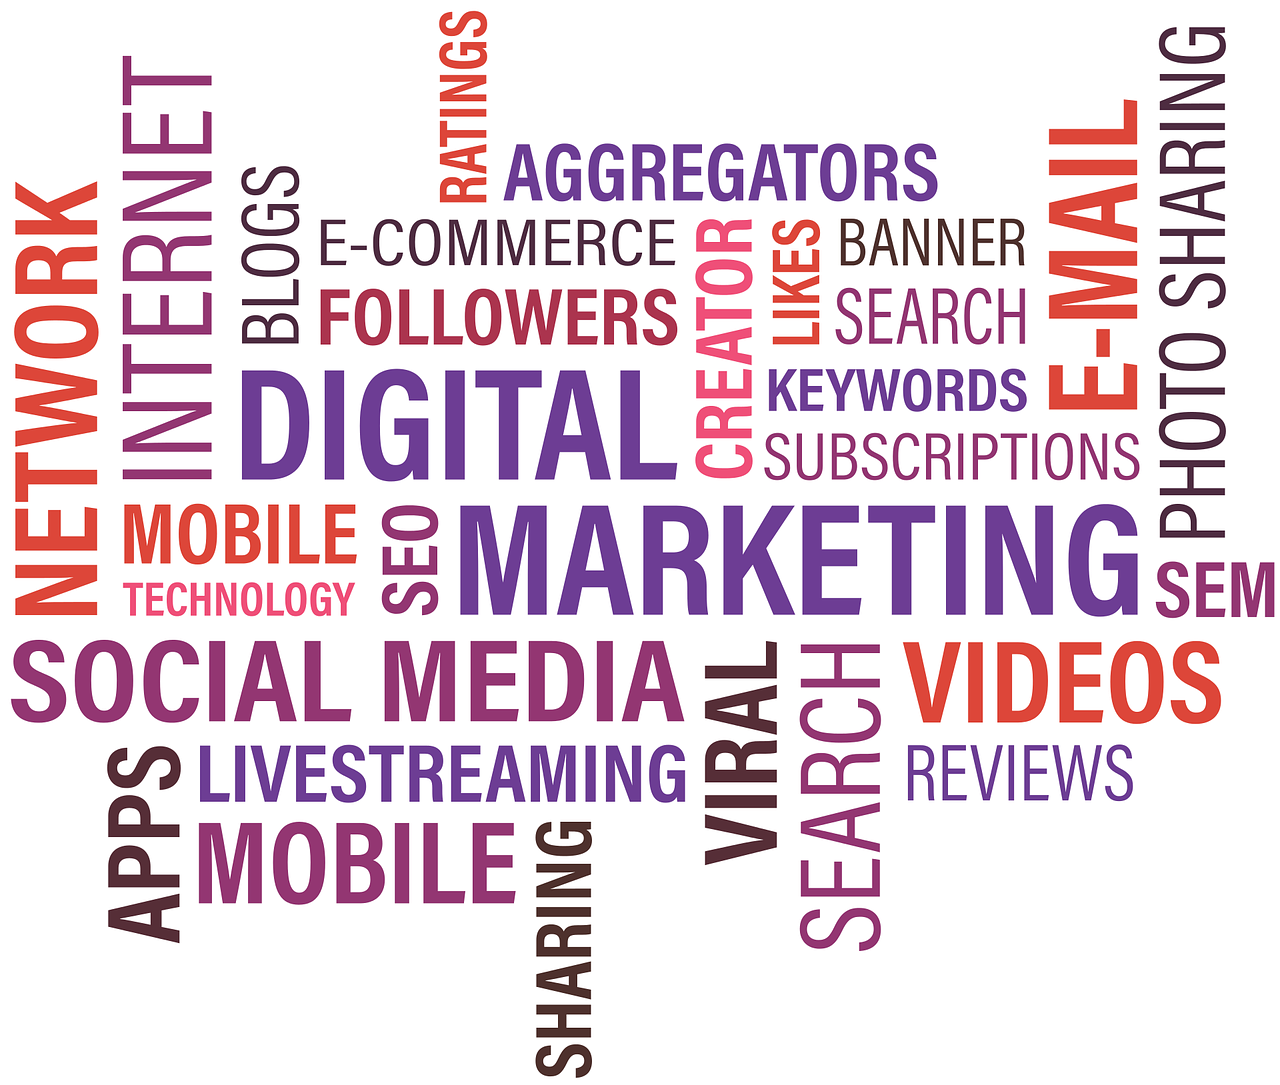 common job of SEO and digital marketing